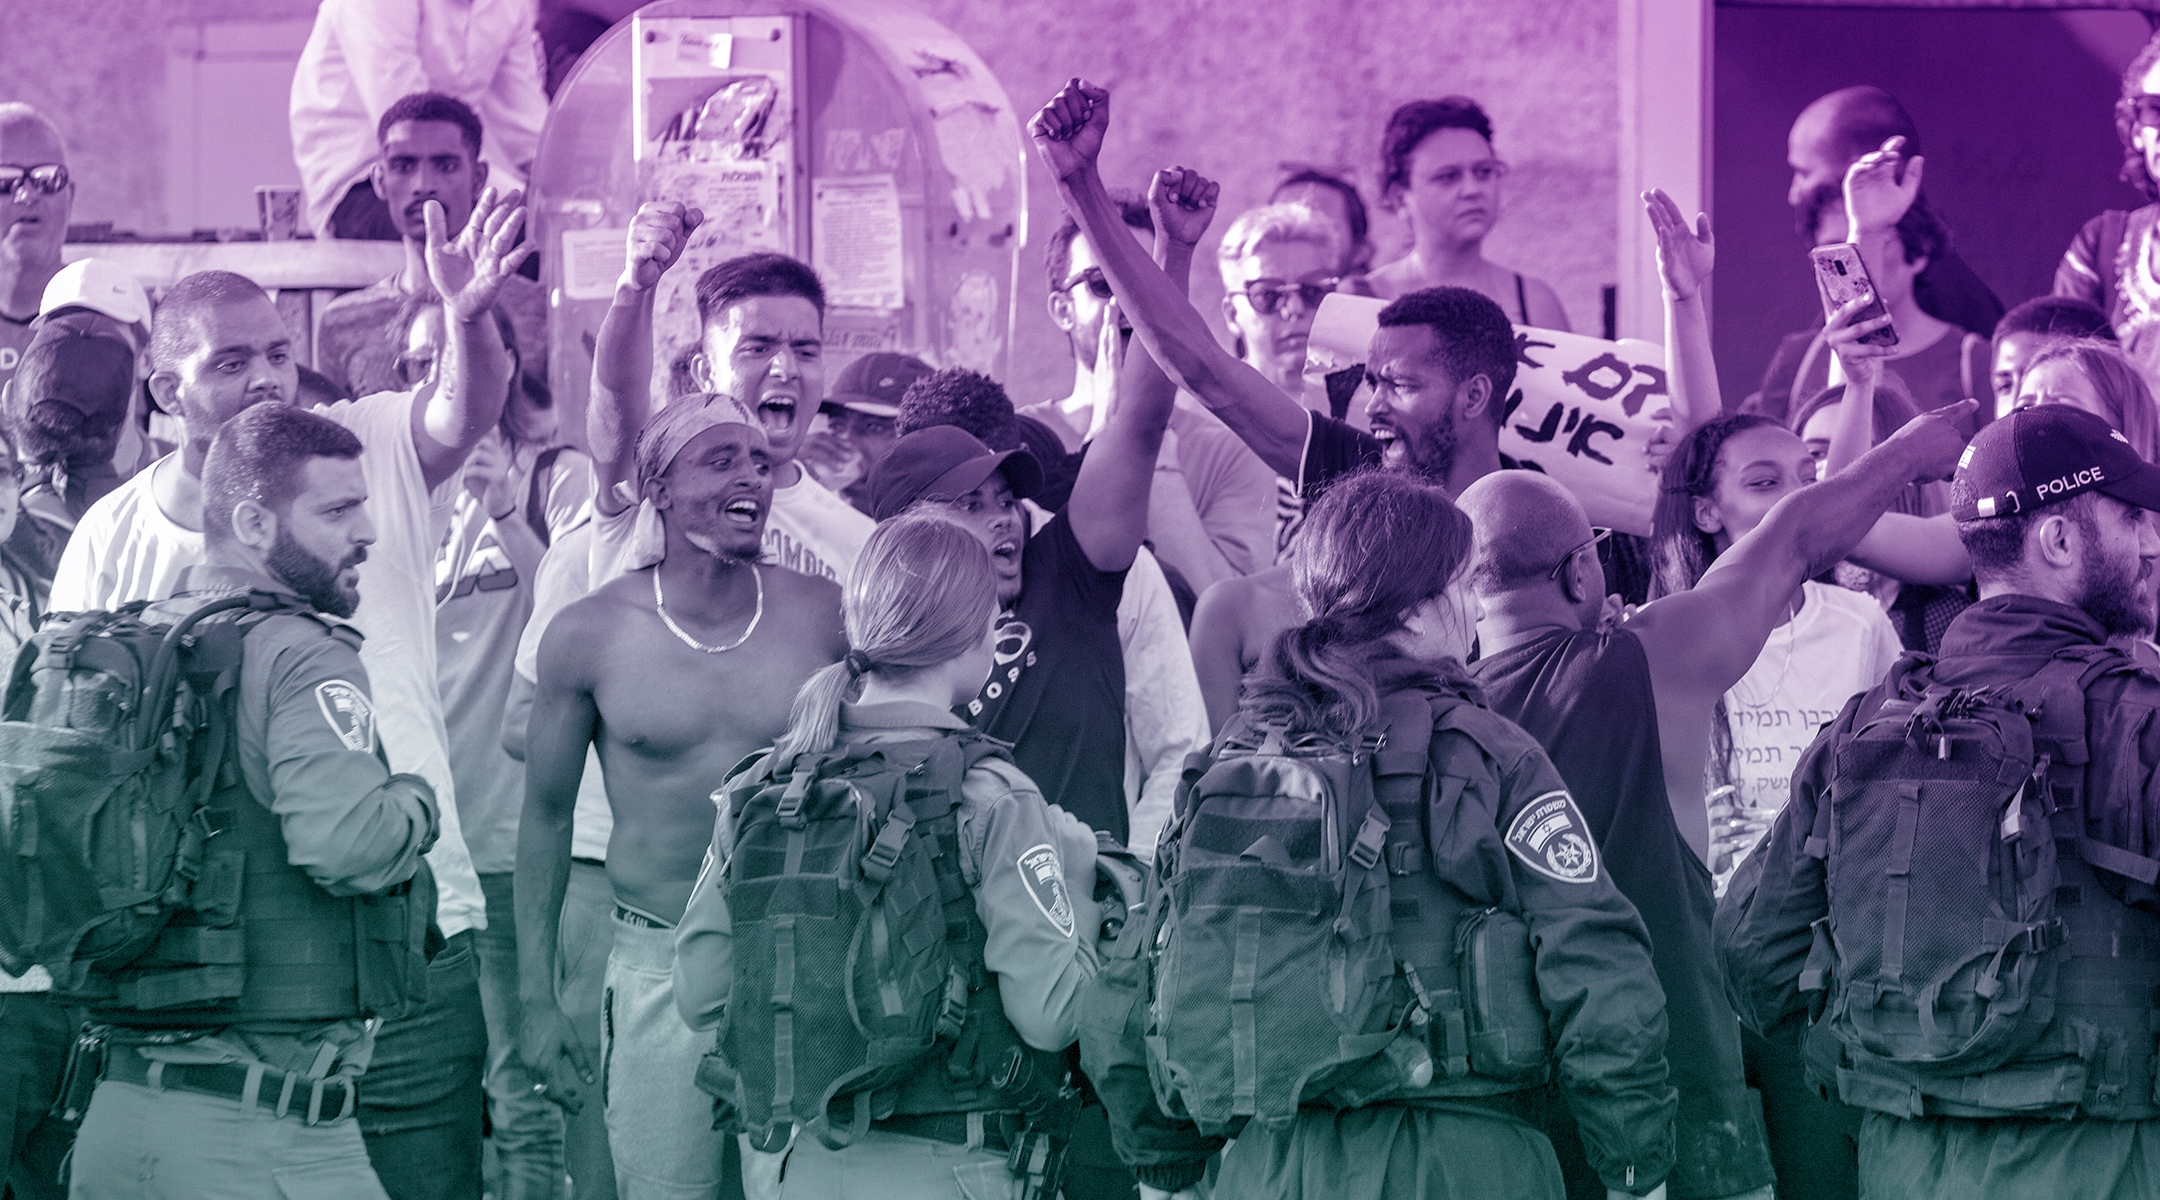 The protests by Ethiopian Israelis, explained - Jewish Telegraphic